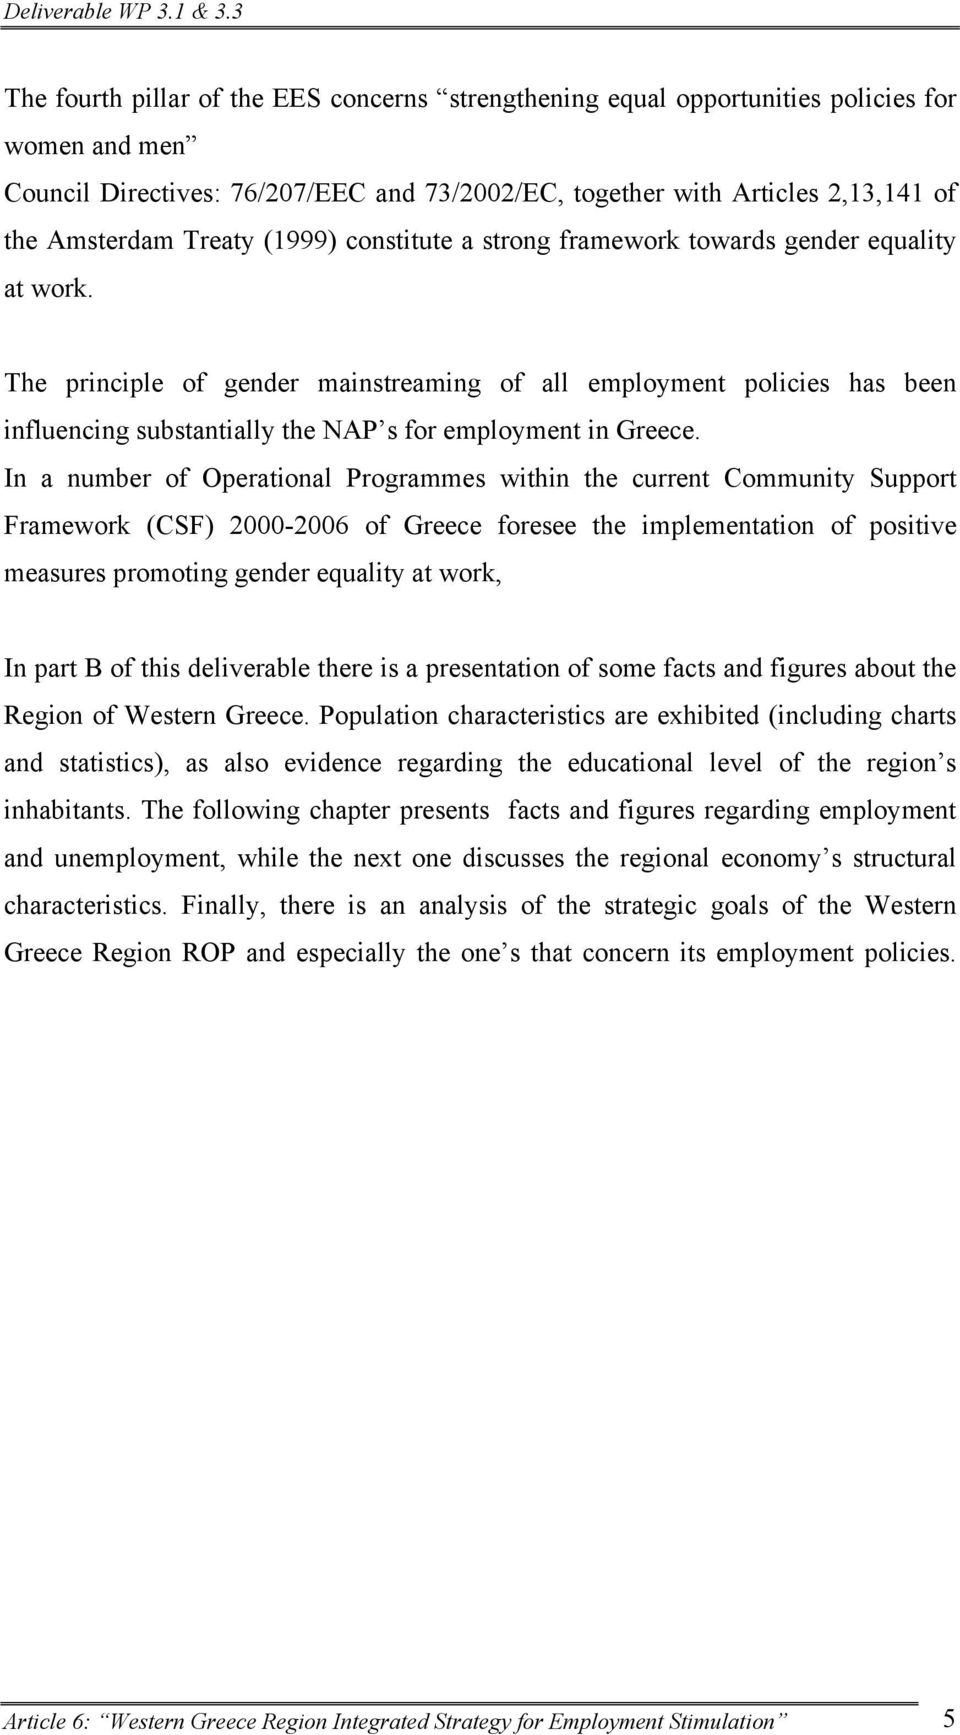 The principle of gender mainstreaming of all employment policies has been influencing substantially the NAP s for employment in Greece.